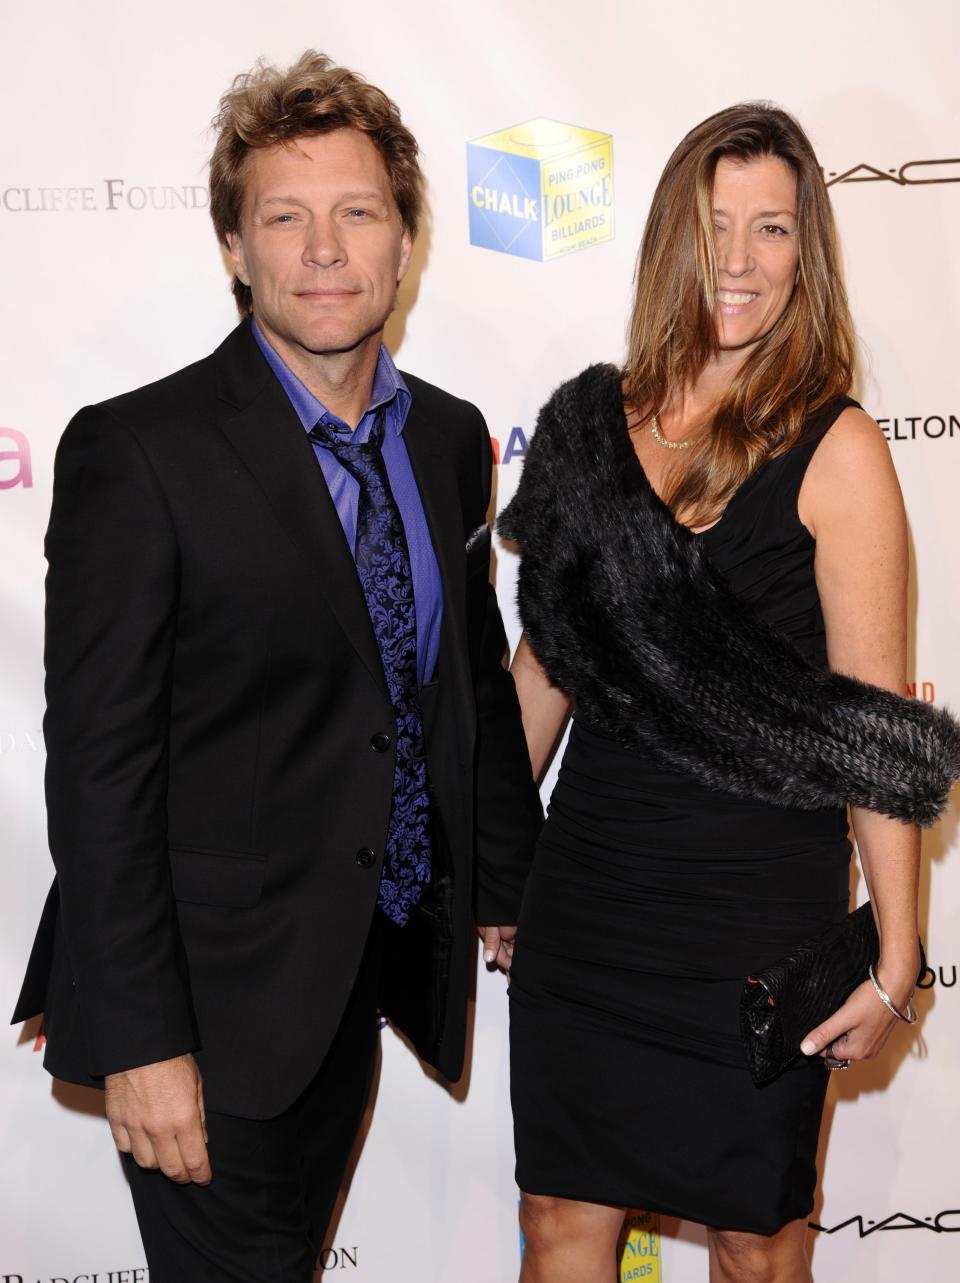 Singer Jon Bon Jovi and Dorothea Bon Jovi attend the Elton John AIDS Foundation 10th Annual Enduring Vision Benefit, on Wednesday, Oct. 26, 2011, in New York. (AP Photo/Peter Kramer)